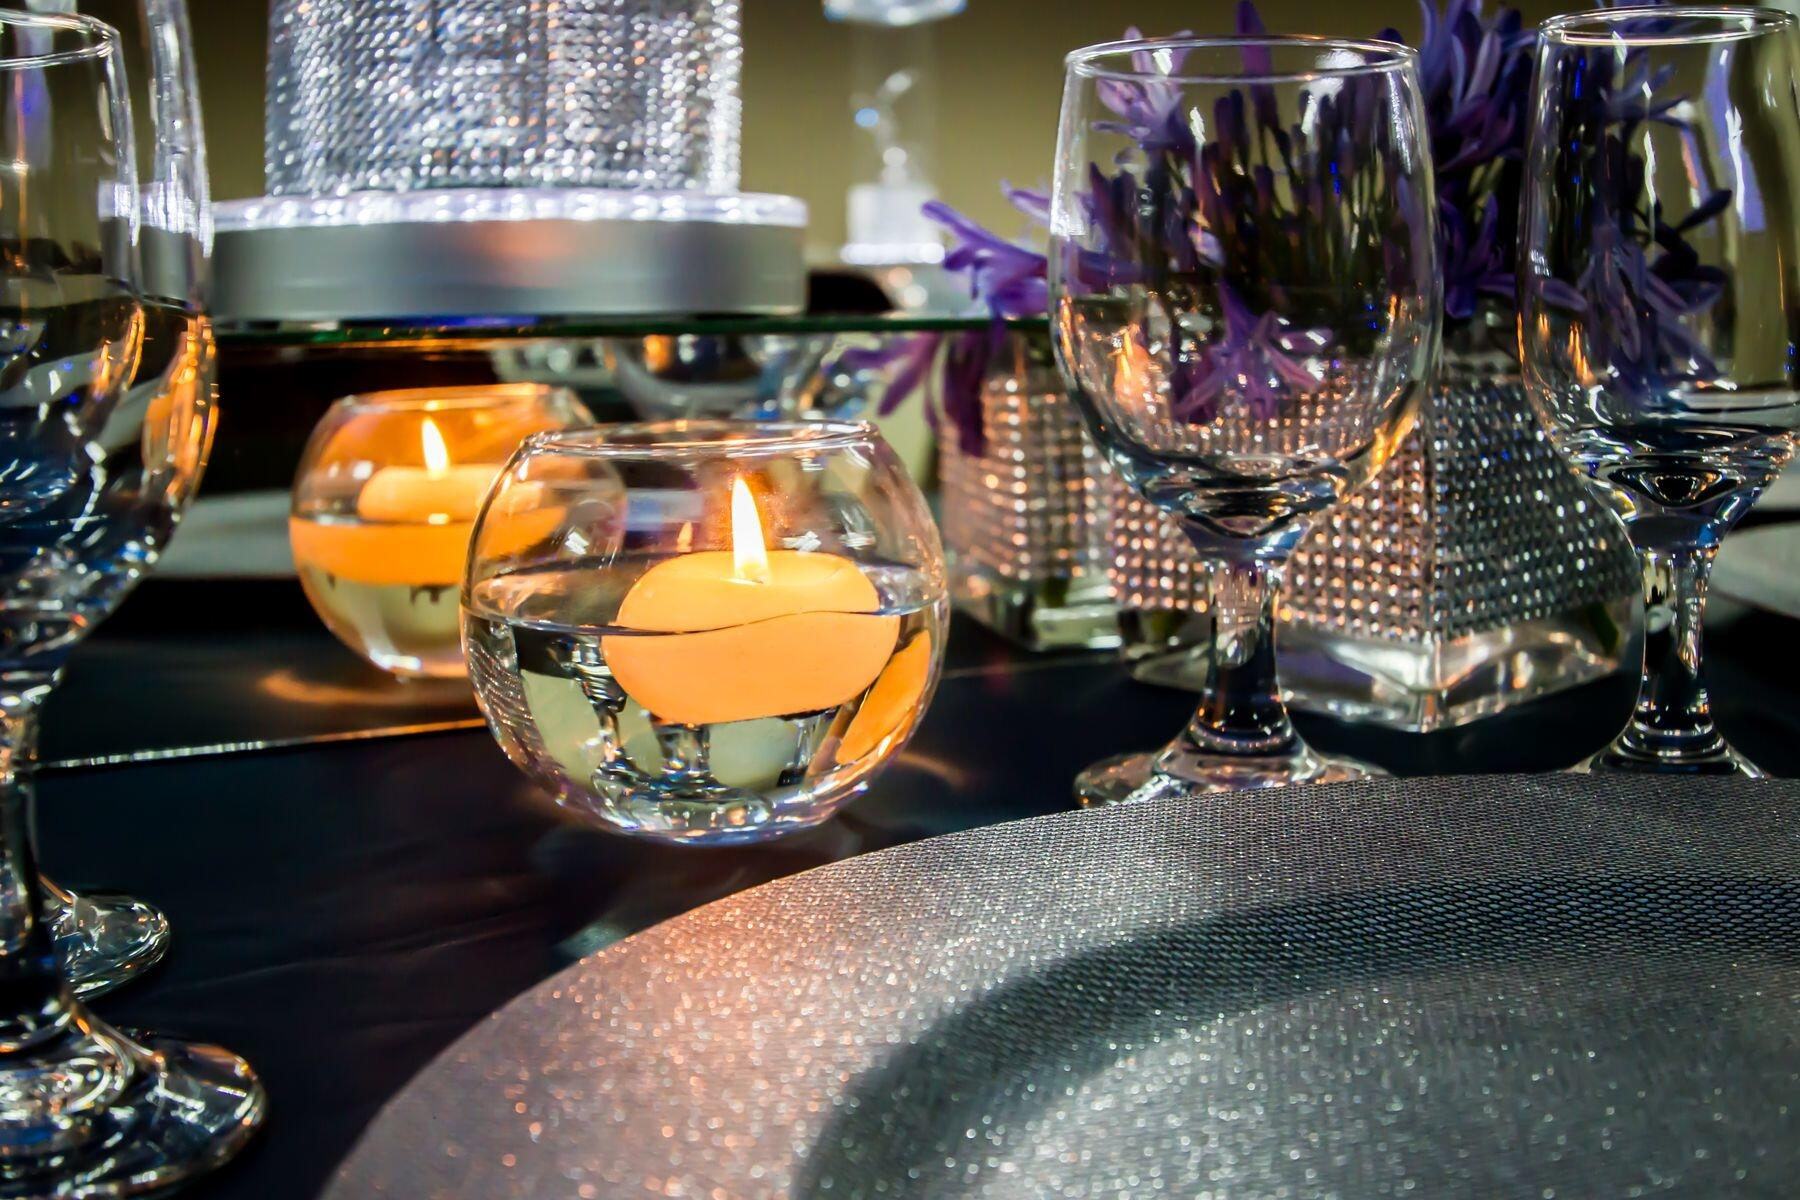 Candle votives and glasses set on banquet table